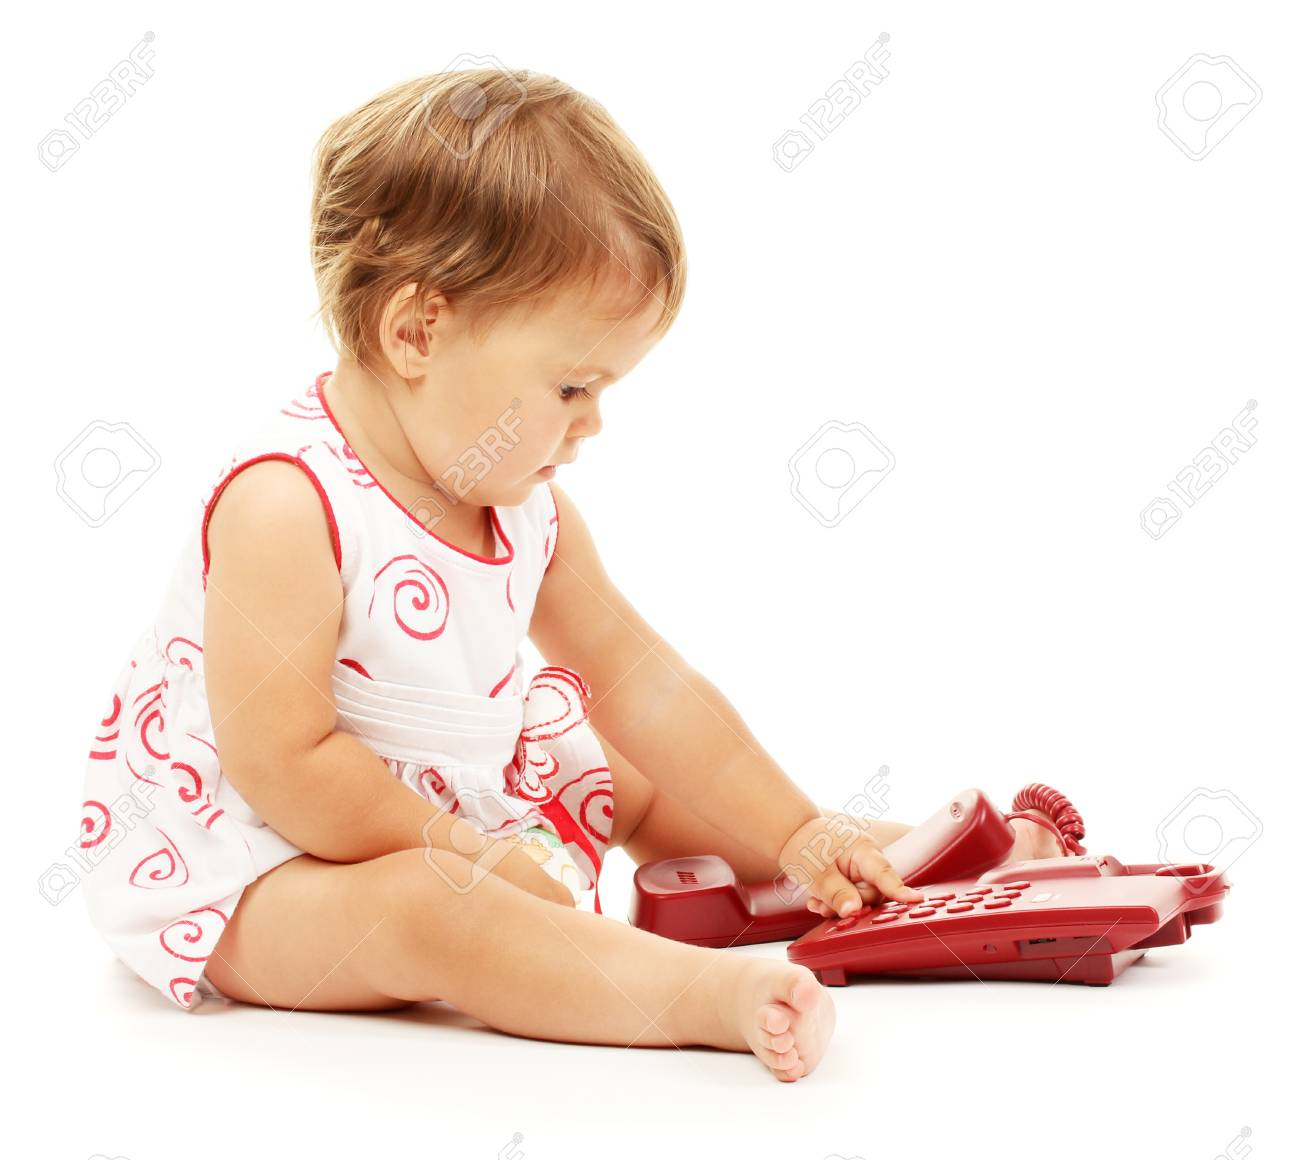 Cute baby with telephone isolated on white Stock Photo - 14843412